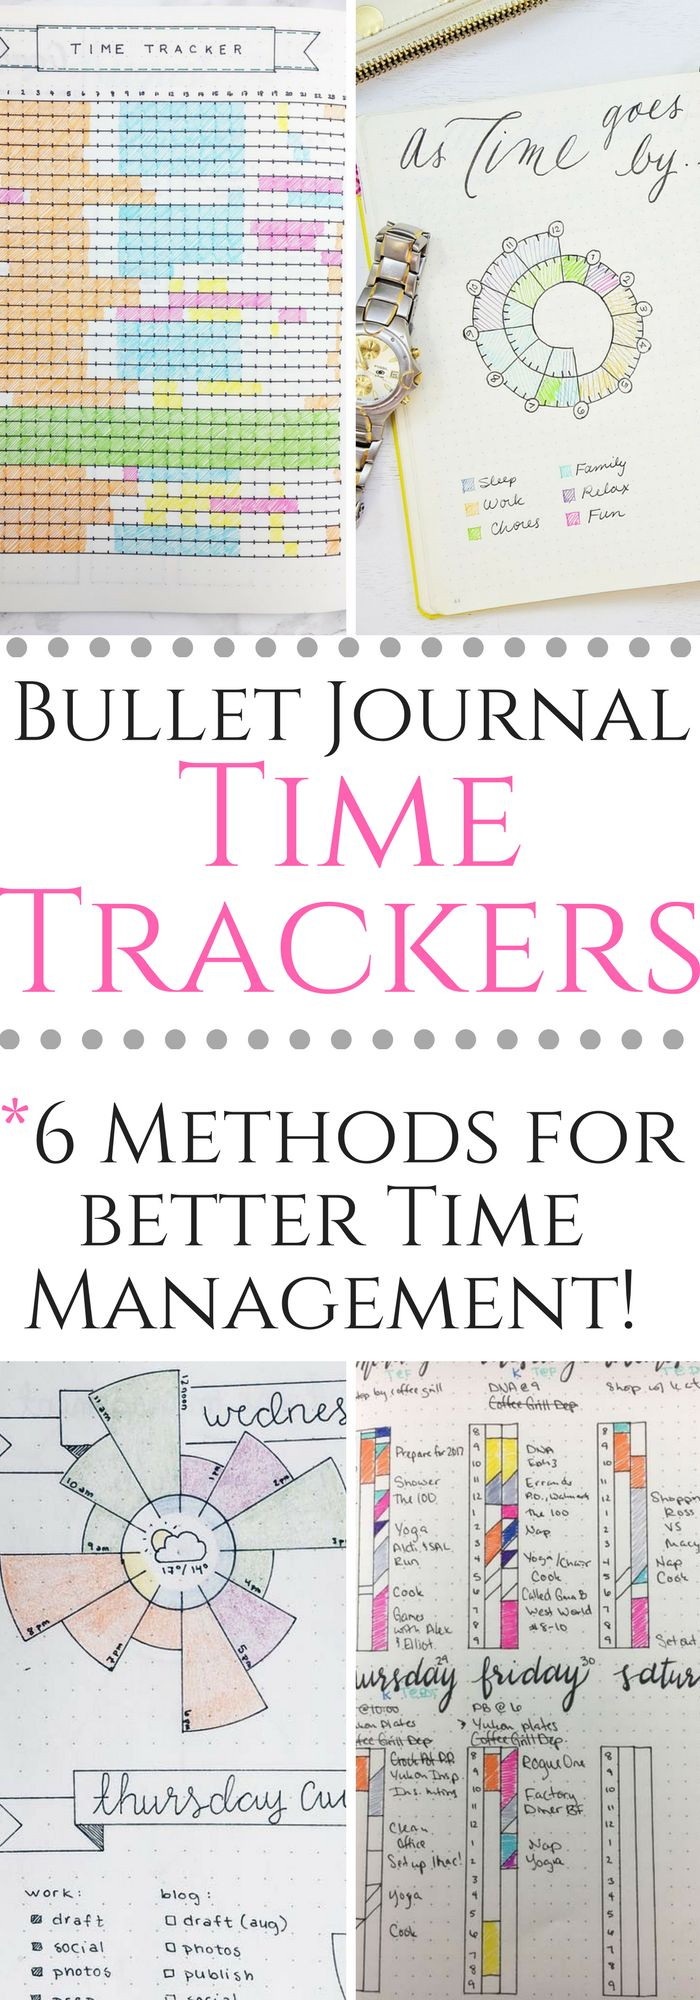 Bullet Journal Trackers for better time management!